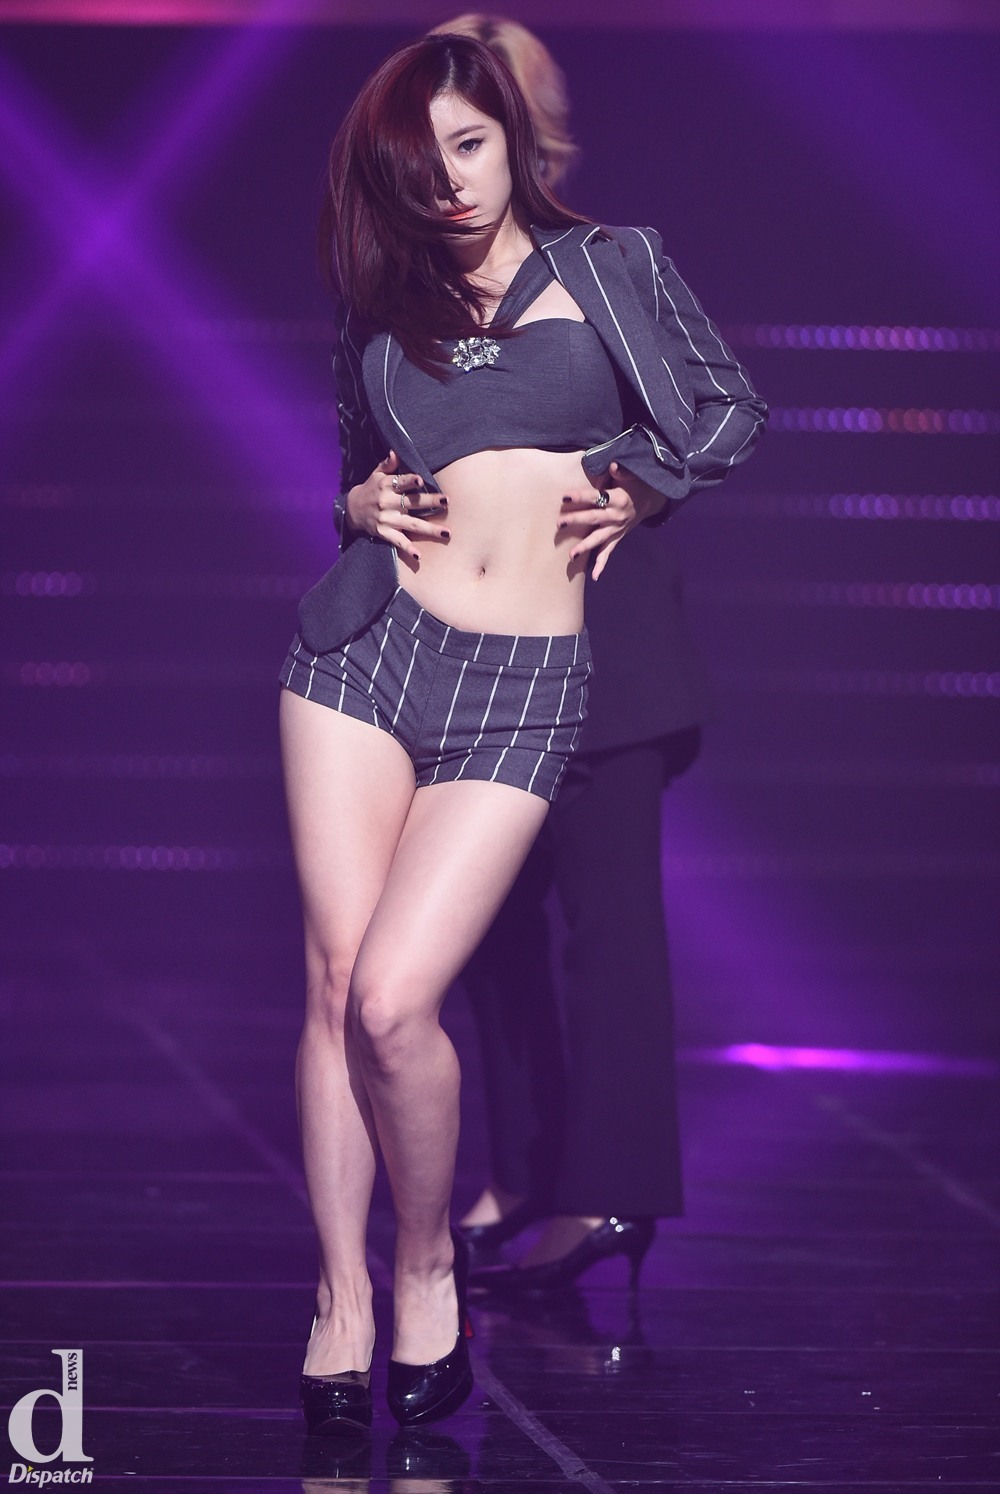 TOP 10 Sexiest Outfits Of Secret Hyosung - Koreaboo